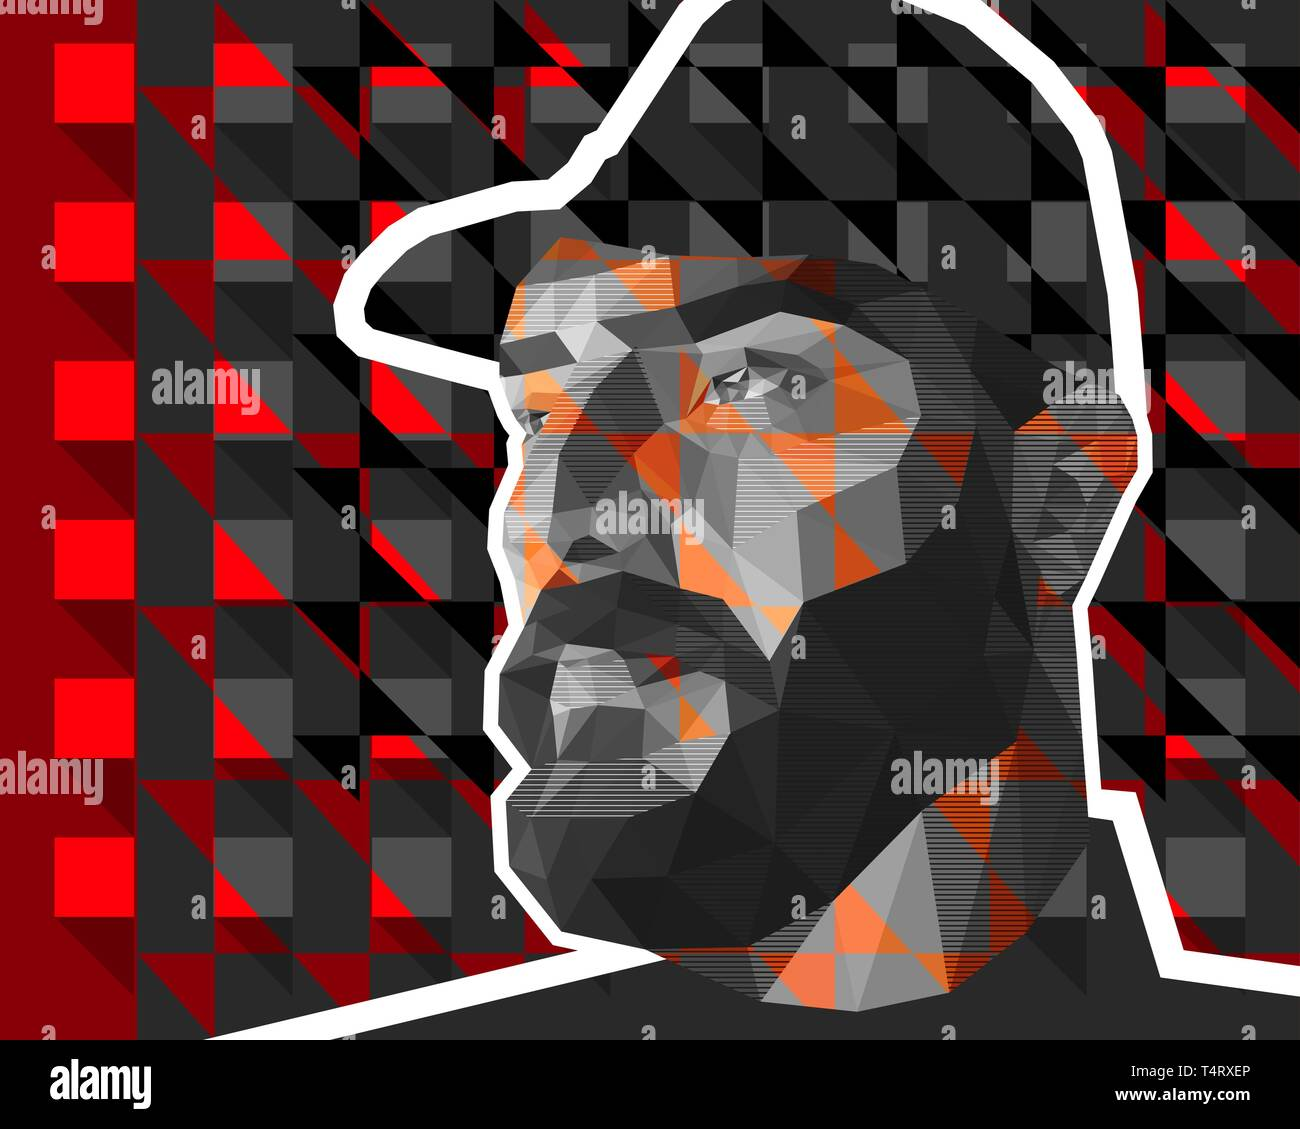 Vector illustration in low polygon style. A man with large expressive features, a thick beard, a crook-nose and slanting eyes is dressed in military u - Stock Image